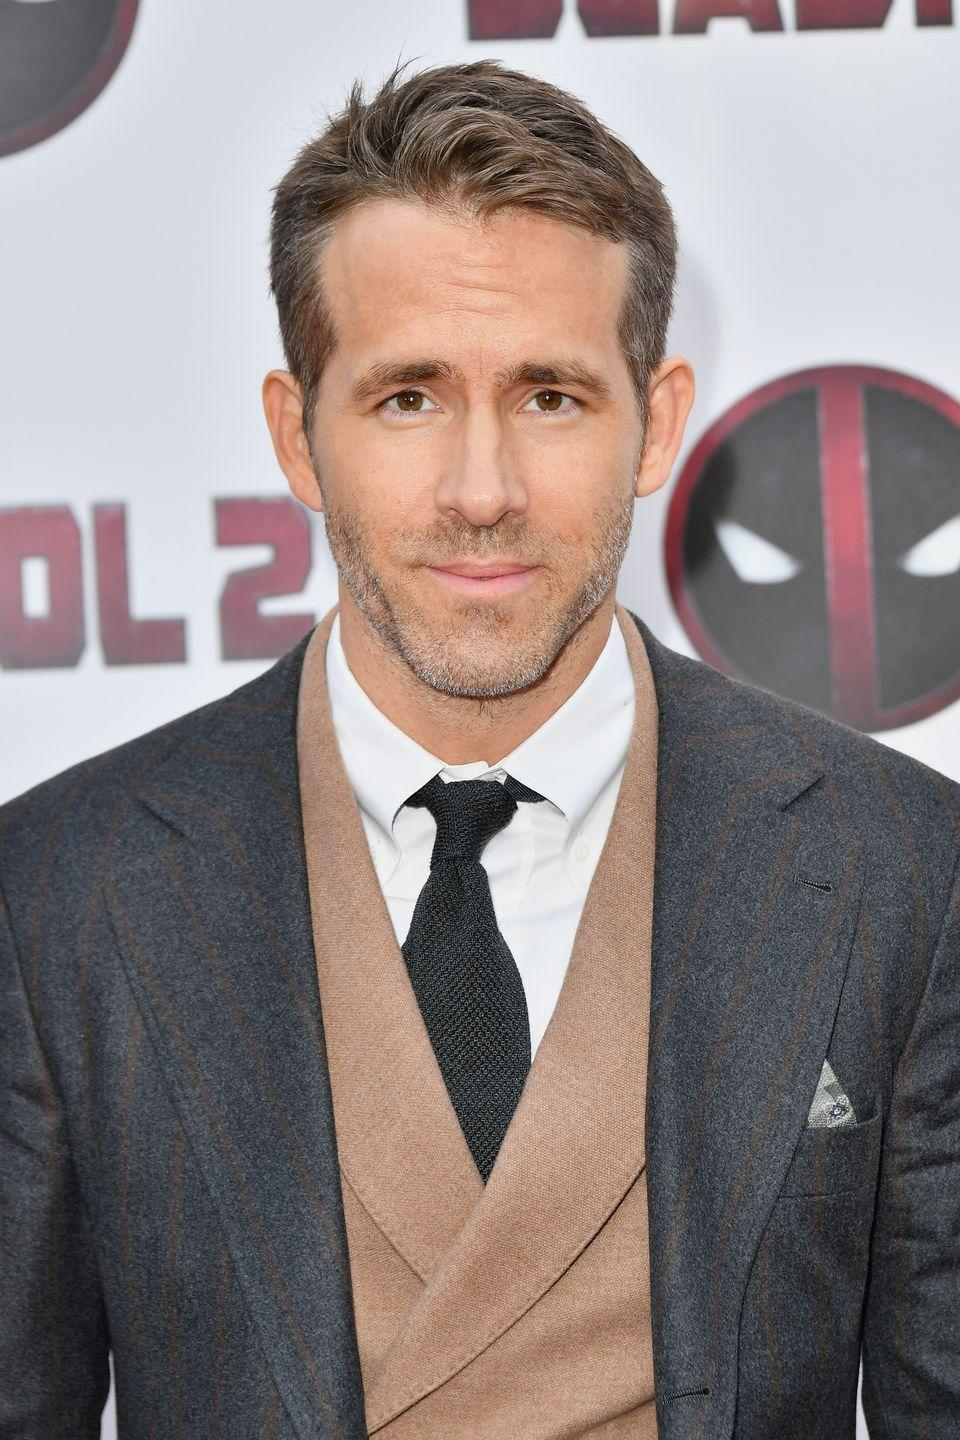 "<p><em>Deadpool</em> <a class=""link rapid-noclick-resp"" href=""https://www.amazon.com/Deadpool-Ryan-Reynolds/dp/B01BHDDR6M/ref=sr_1_2?crid=2II4Y77JAPKBO&dchild=1&keywords=deadpool&qid=1596901429&s=instant-video&sprefix=dead%2Cinstant-video%2C169&sr=1-2&tag=syn-yahoo-20&ascsubtag=%5Bartid%7C10063.g.34076816%5Bsrc%7Cyahoo-us"" rel=""nofollow noopener"" target=""_blank"" data-ylk=""slk:BUY NOW"">BUY NOW</a></p><p>In <em>Deadpool 2</em>, Reynolds gets to show off his superhero skills (and abs) along with his humor. </p><p><strong>More:</strong> <a href=""https://www.cosmopolitan.com/entertainment/movies/g13052760/scary-movies-forgotten-famous-actors-celebrities/"" rel=""nofollow noopener"" target=""_blank"" data-ylk=""slk:45 Famous Actors You Forgot Starred In Scary Movies"" class=""link rapid-noclick-resp"">45 Famous Actors You Forgot Starred In Scary Movies</a></p>"